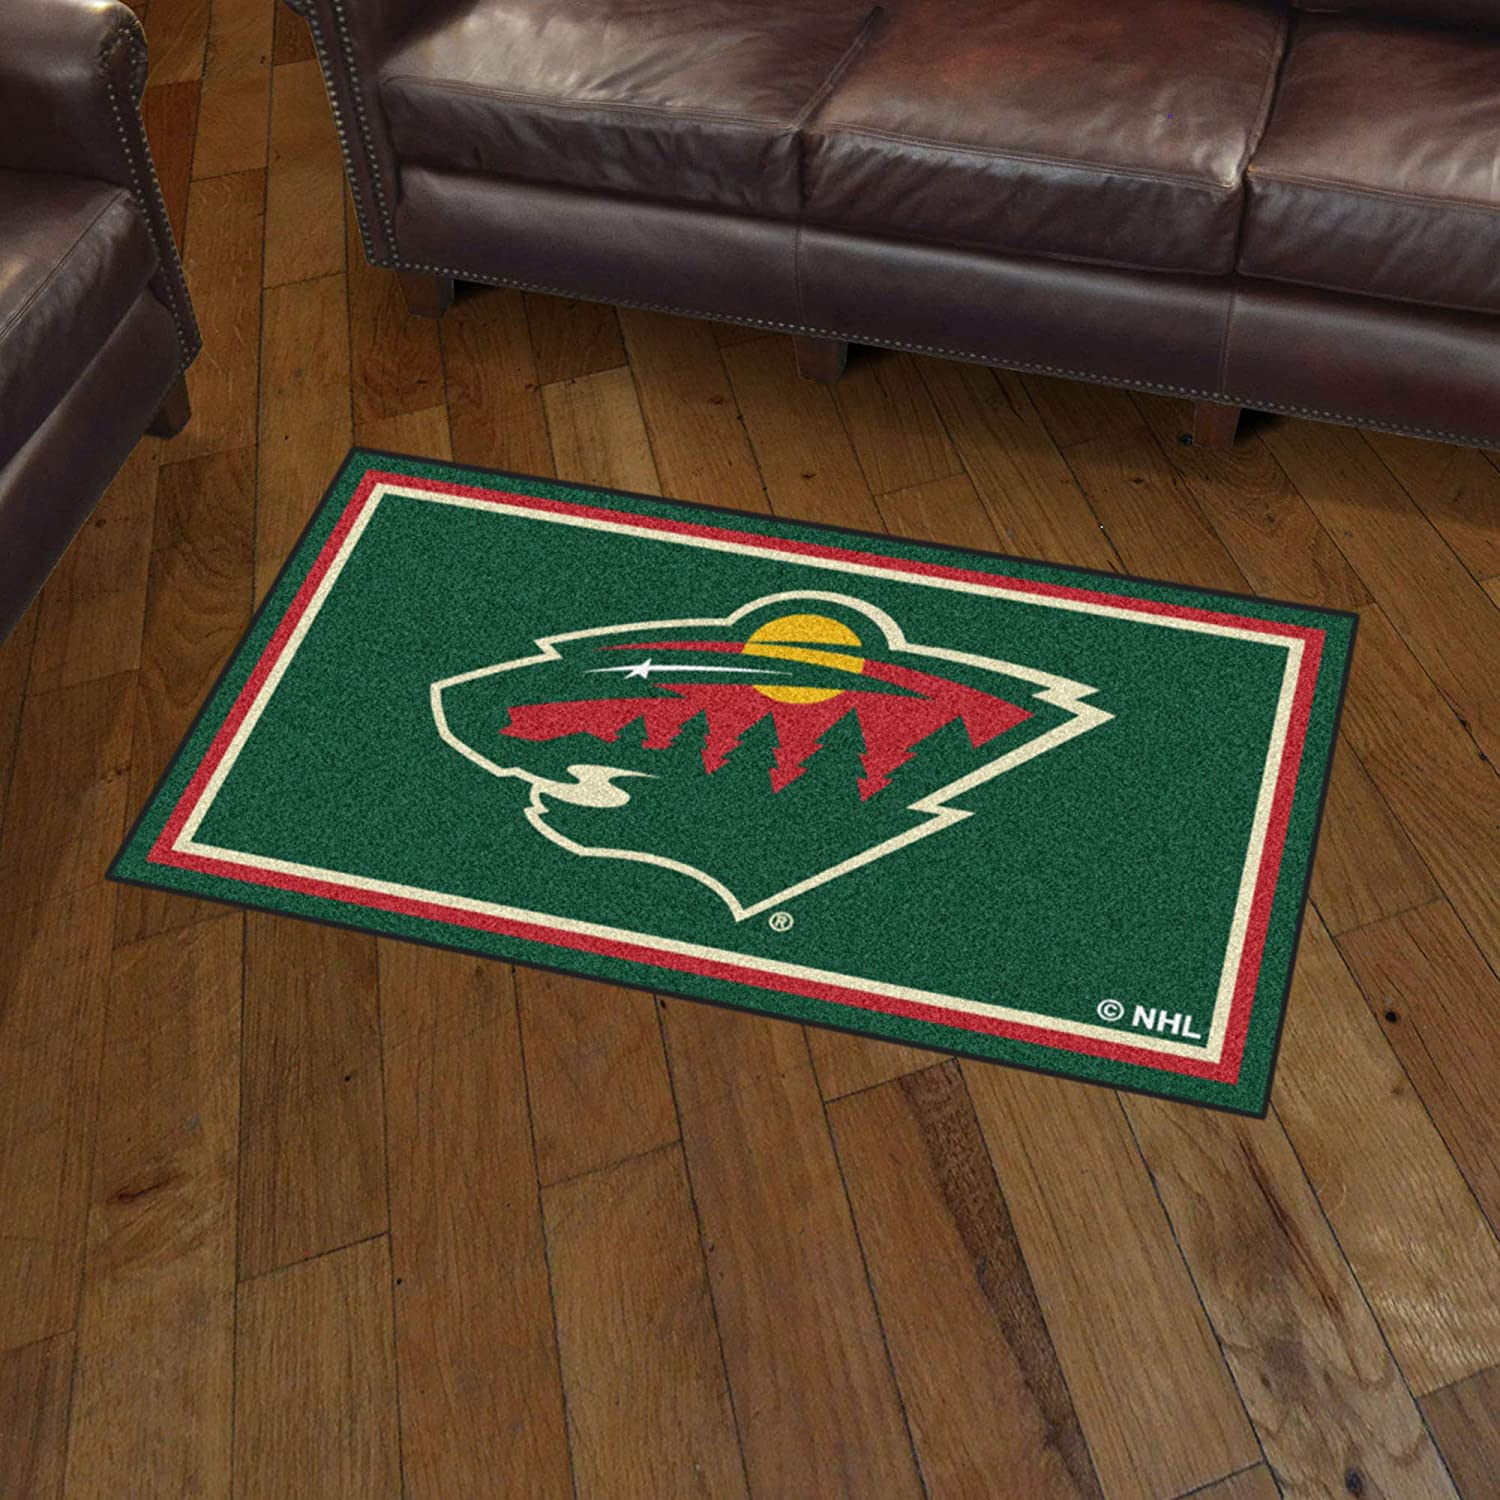 Area Rug Area RUG3 Ft x 5 Ft 3 x 5 x 5 Ft FANMATS NHL Minnesota Wild 3 Ft Green